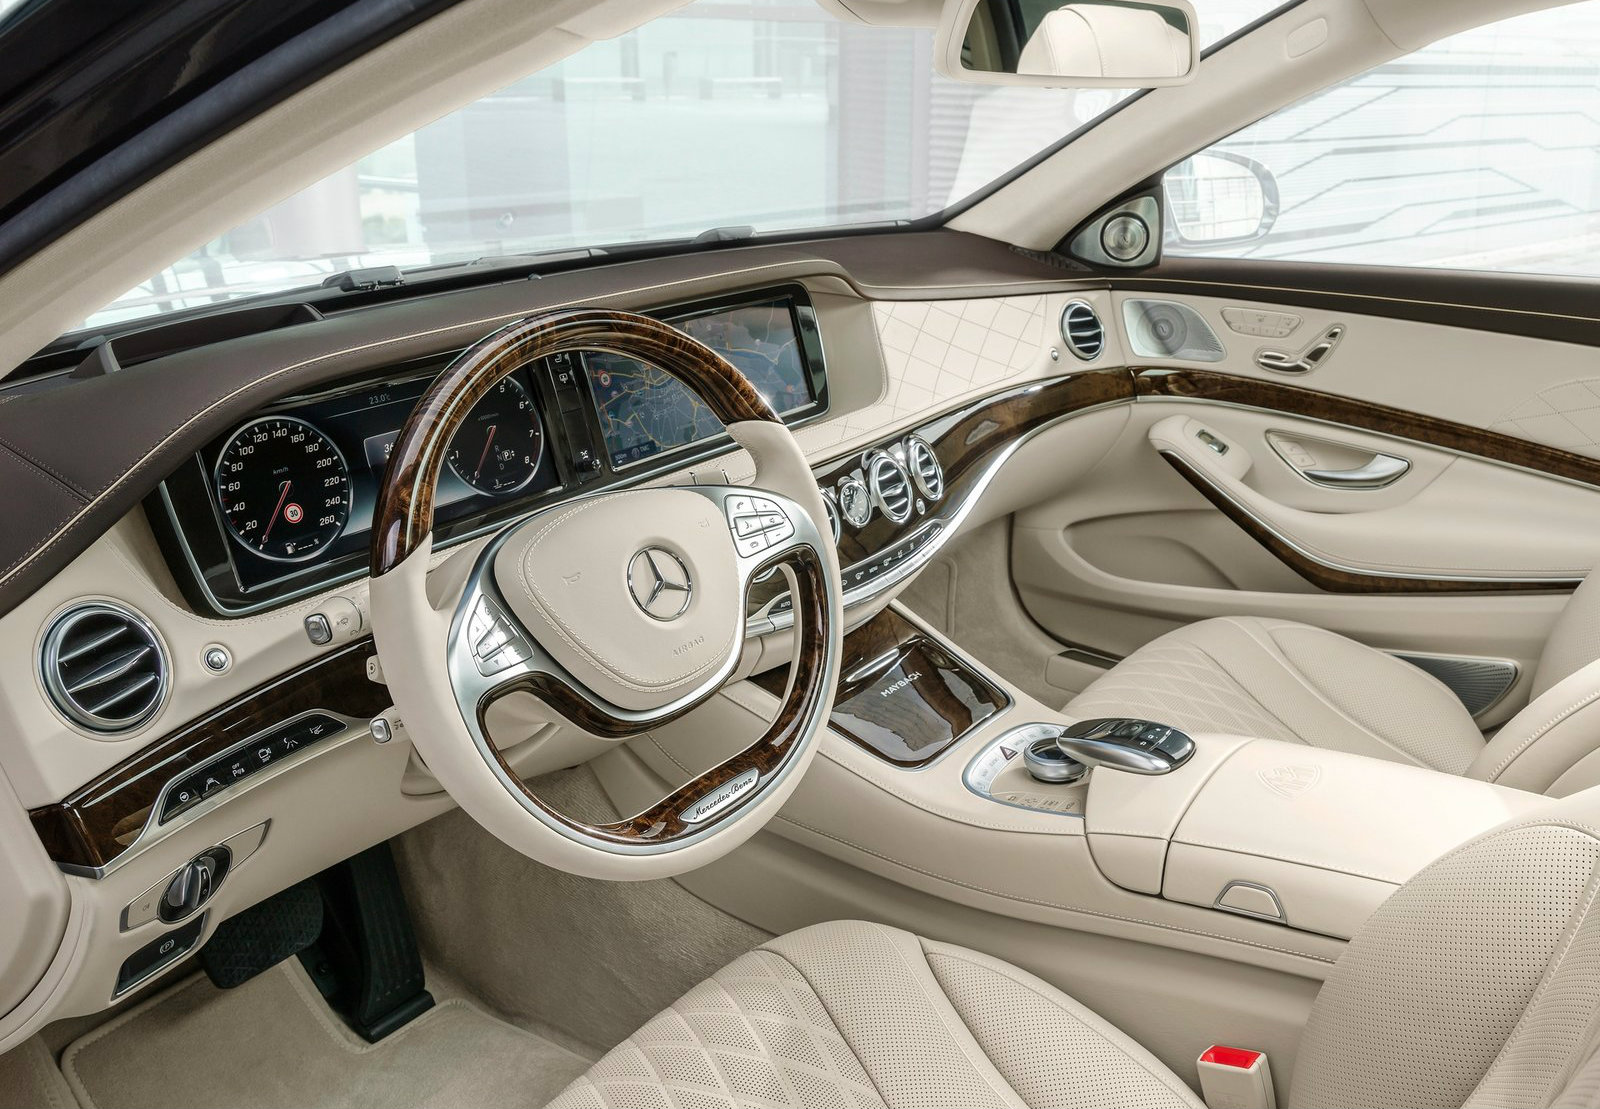 mercedes-maybach s500 priced at €134,053, s600 is €187,841 in